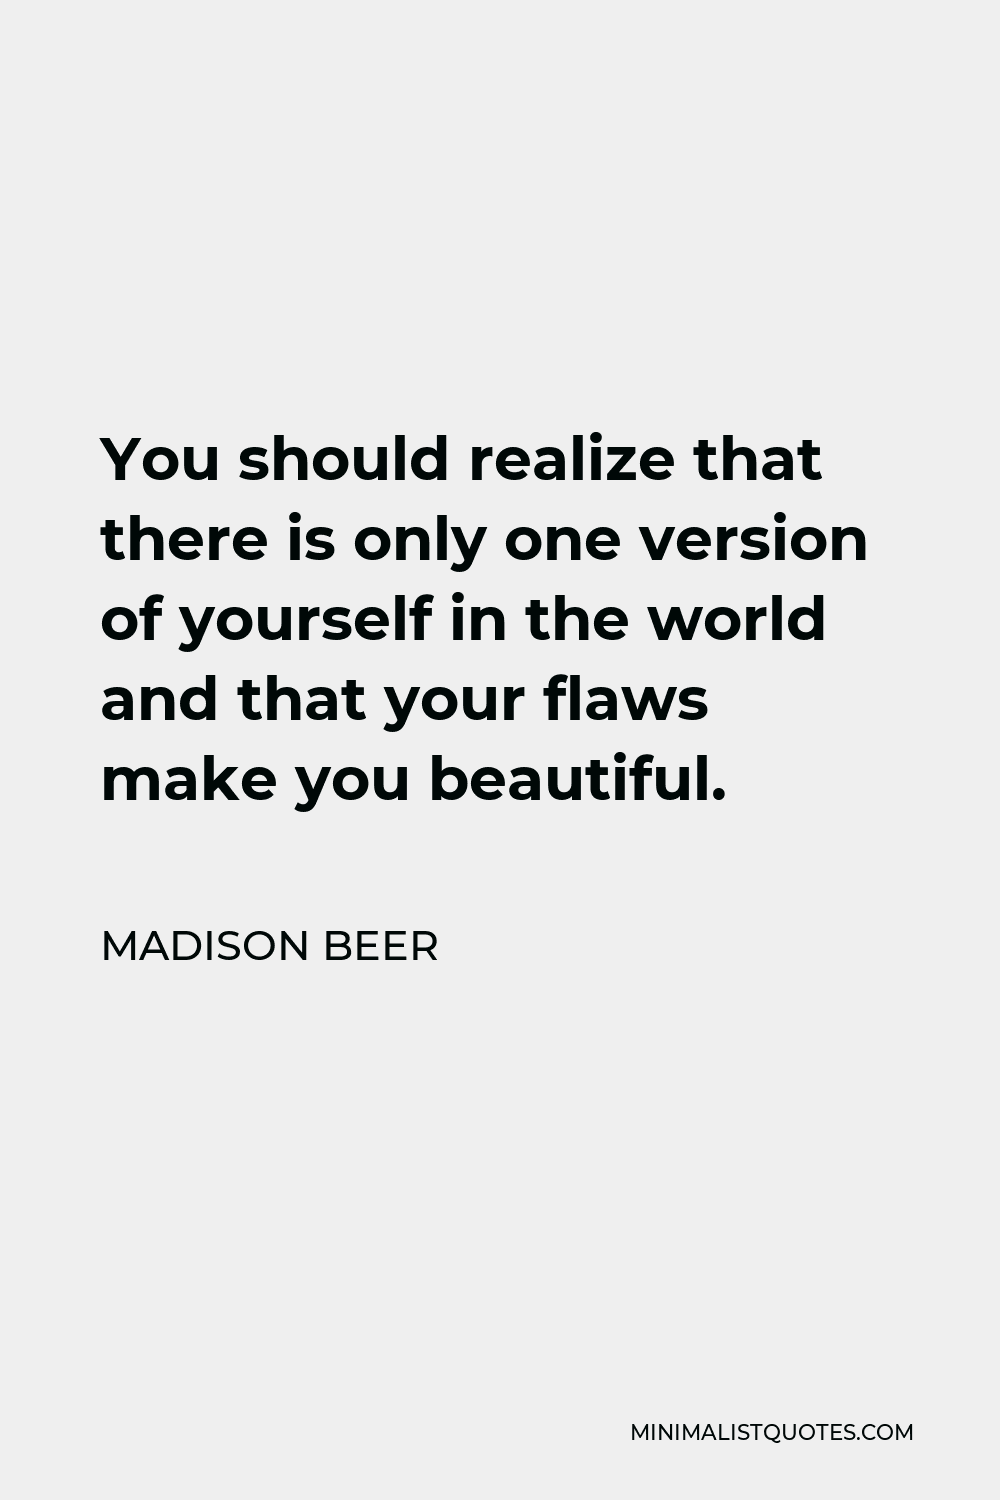 Madison Beer Quote - You should realize that there is only one version of yourself in the world and that your flaws make you beautiful.